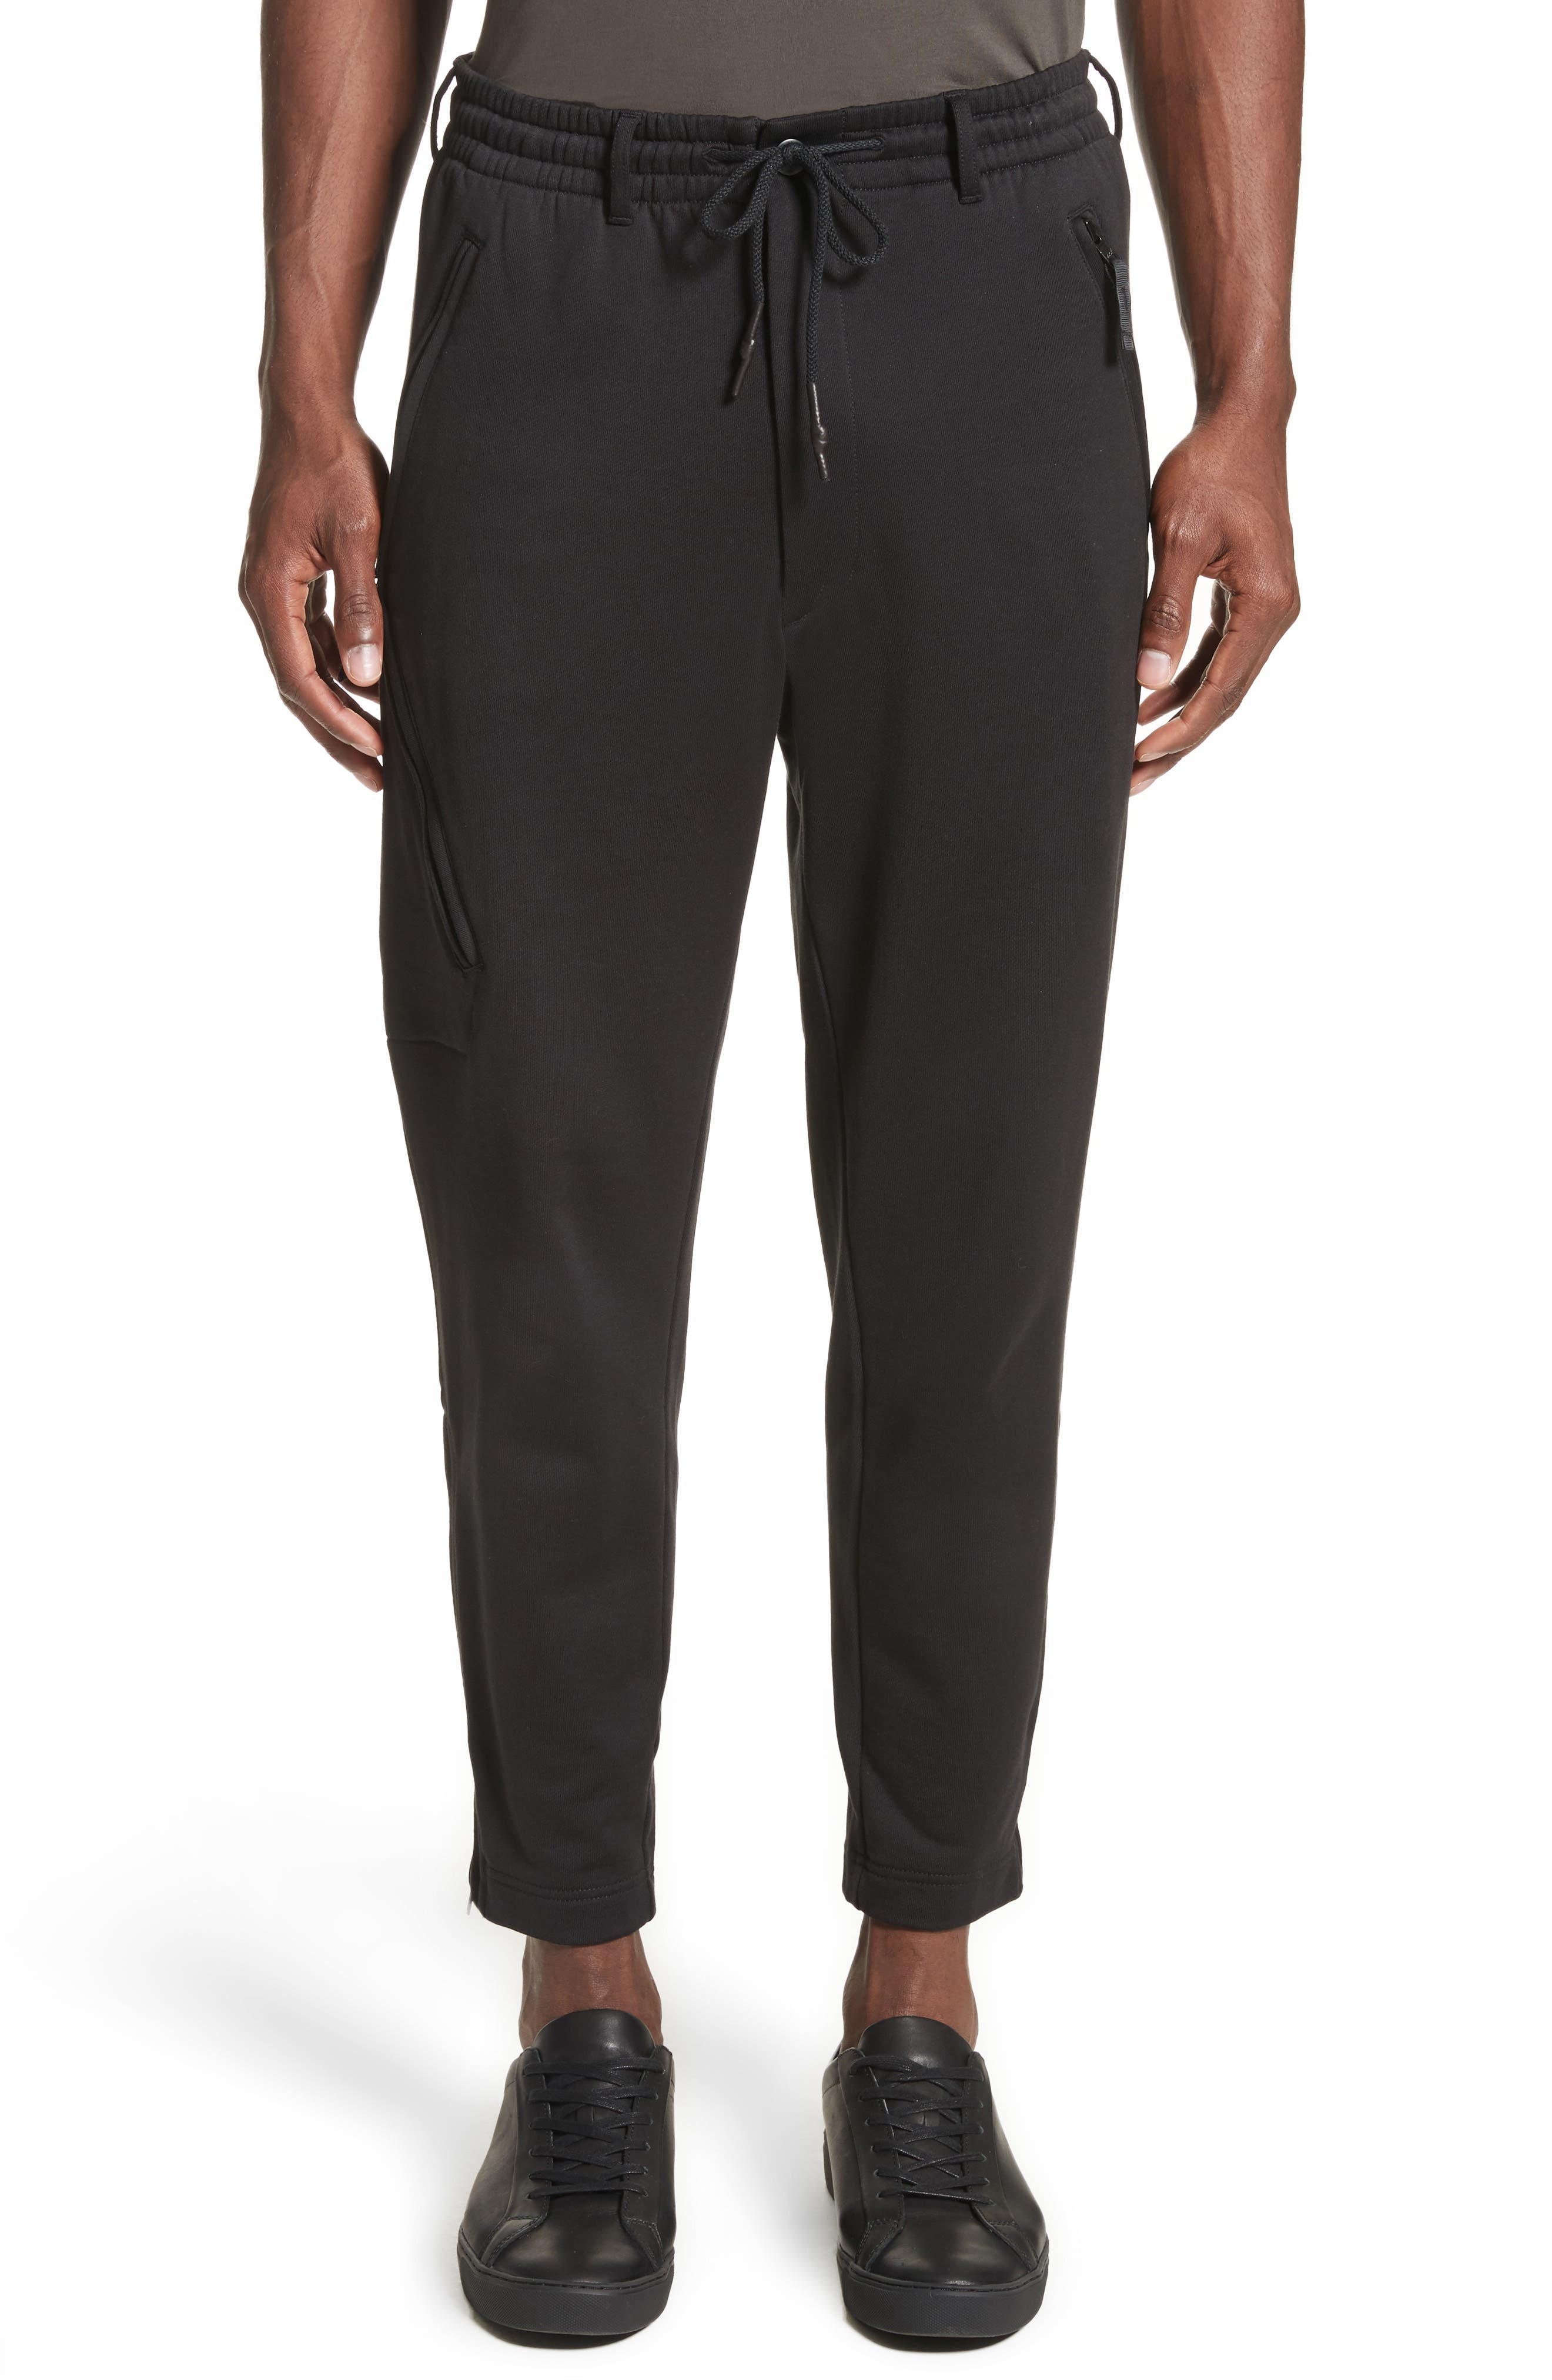 Y-3 Zip Sweatpants